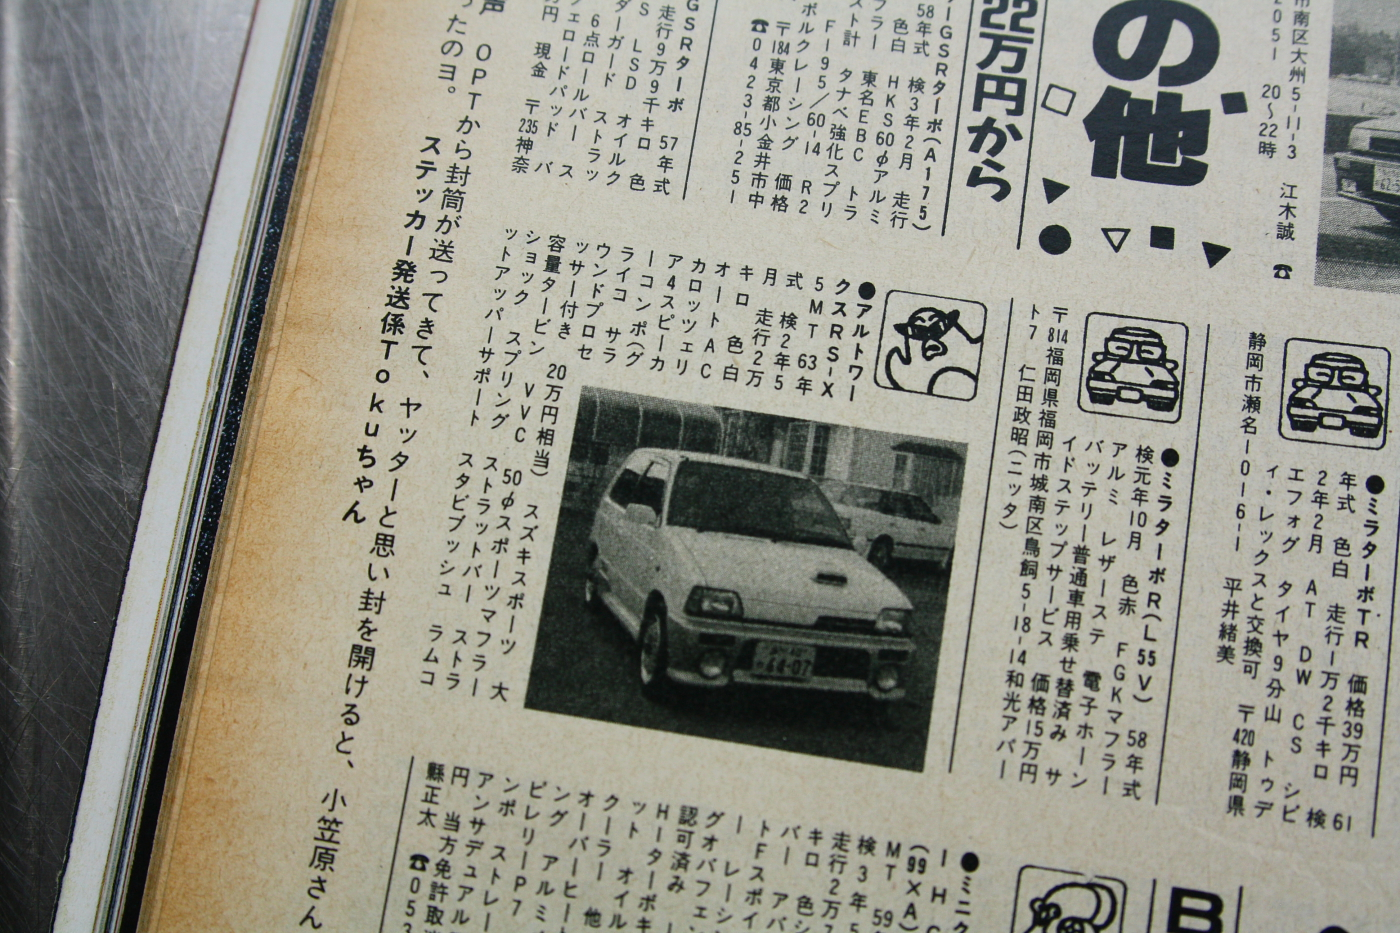 80sHERO December 1989 and the Japanese enthusiast car